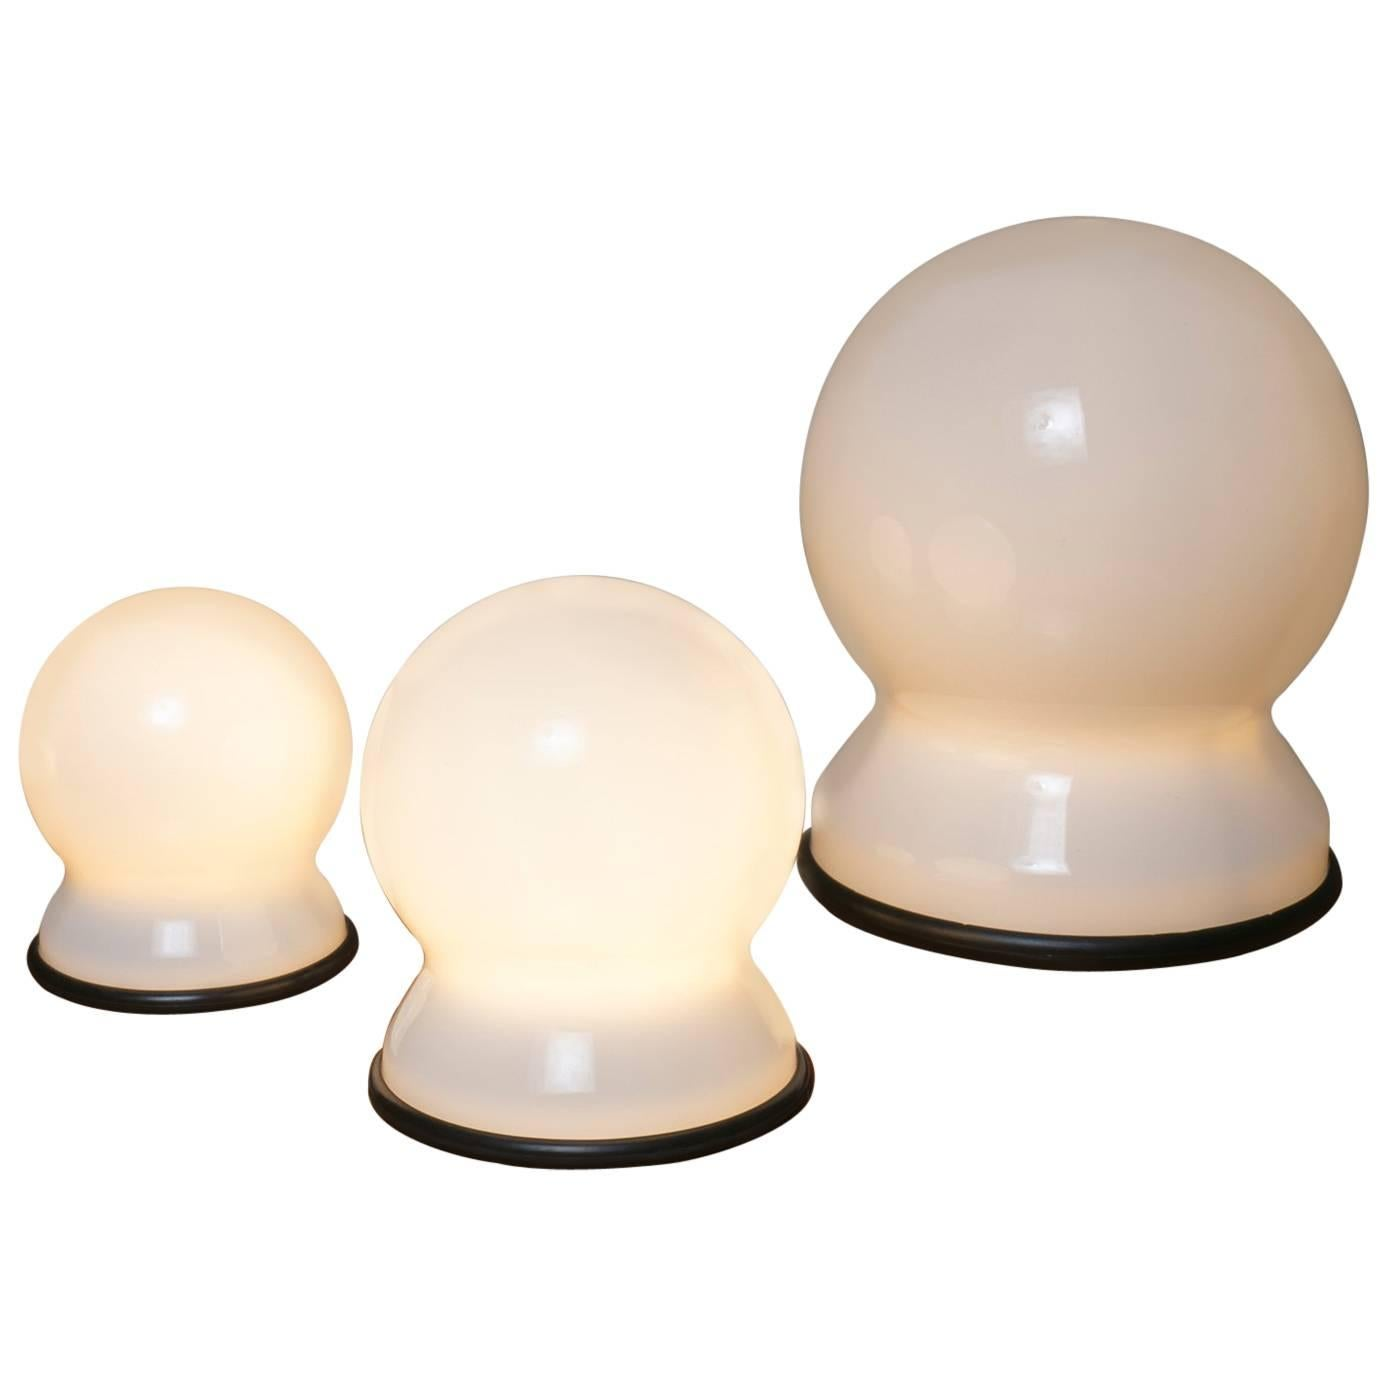 "Set of Three ""Scafandro"" Table Lamps by Sergio Asti for Candle"